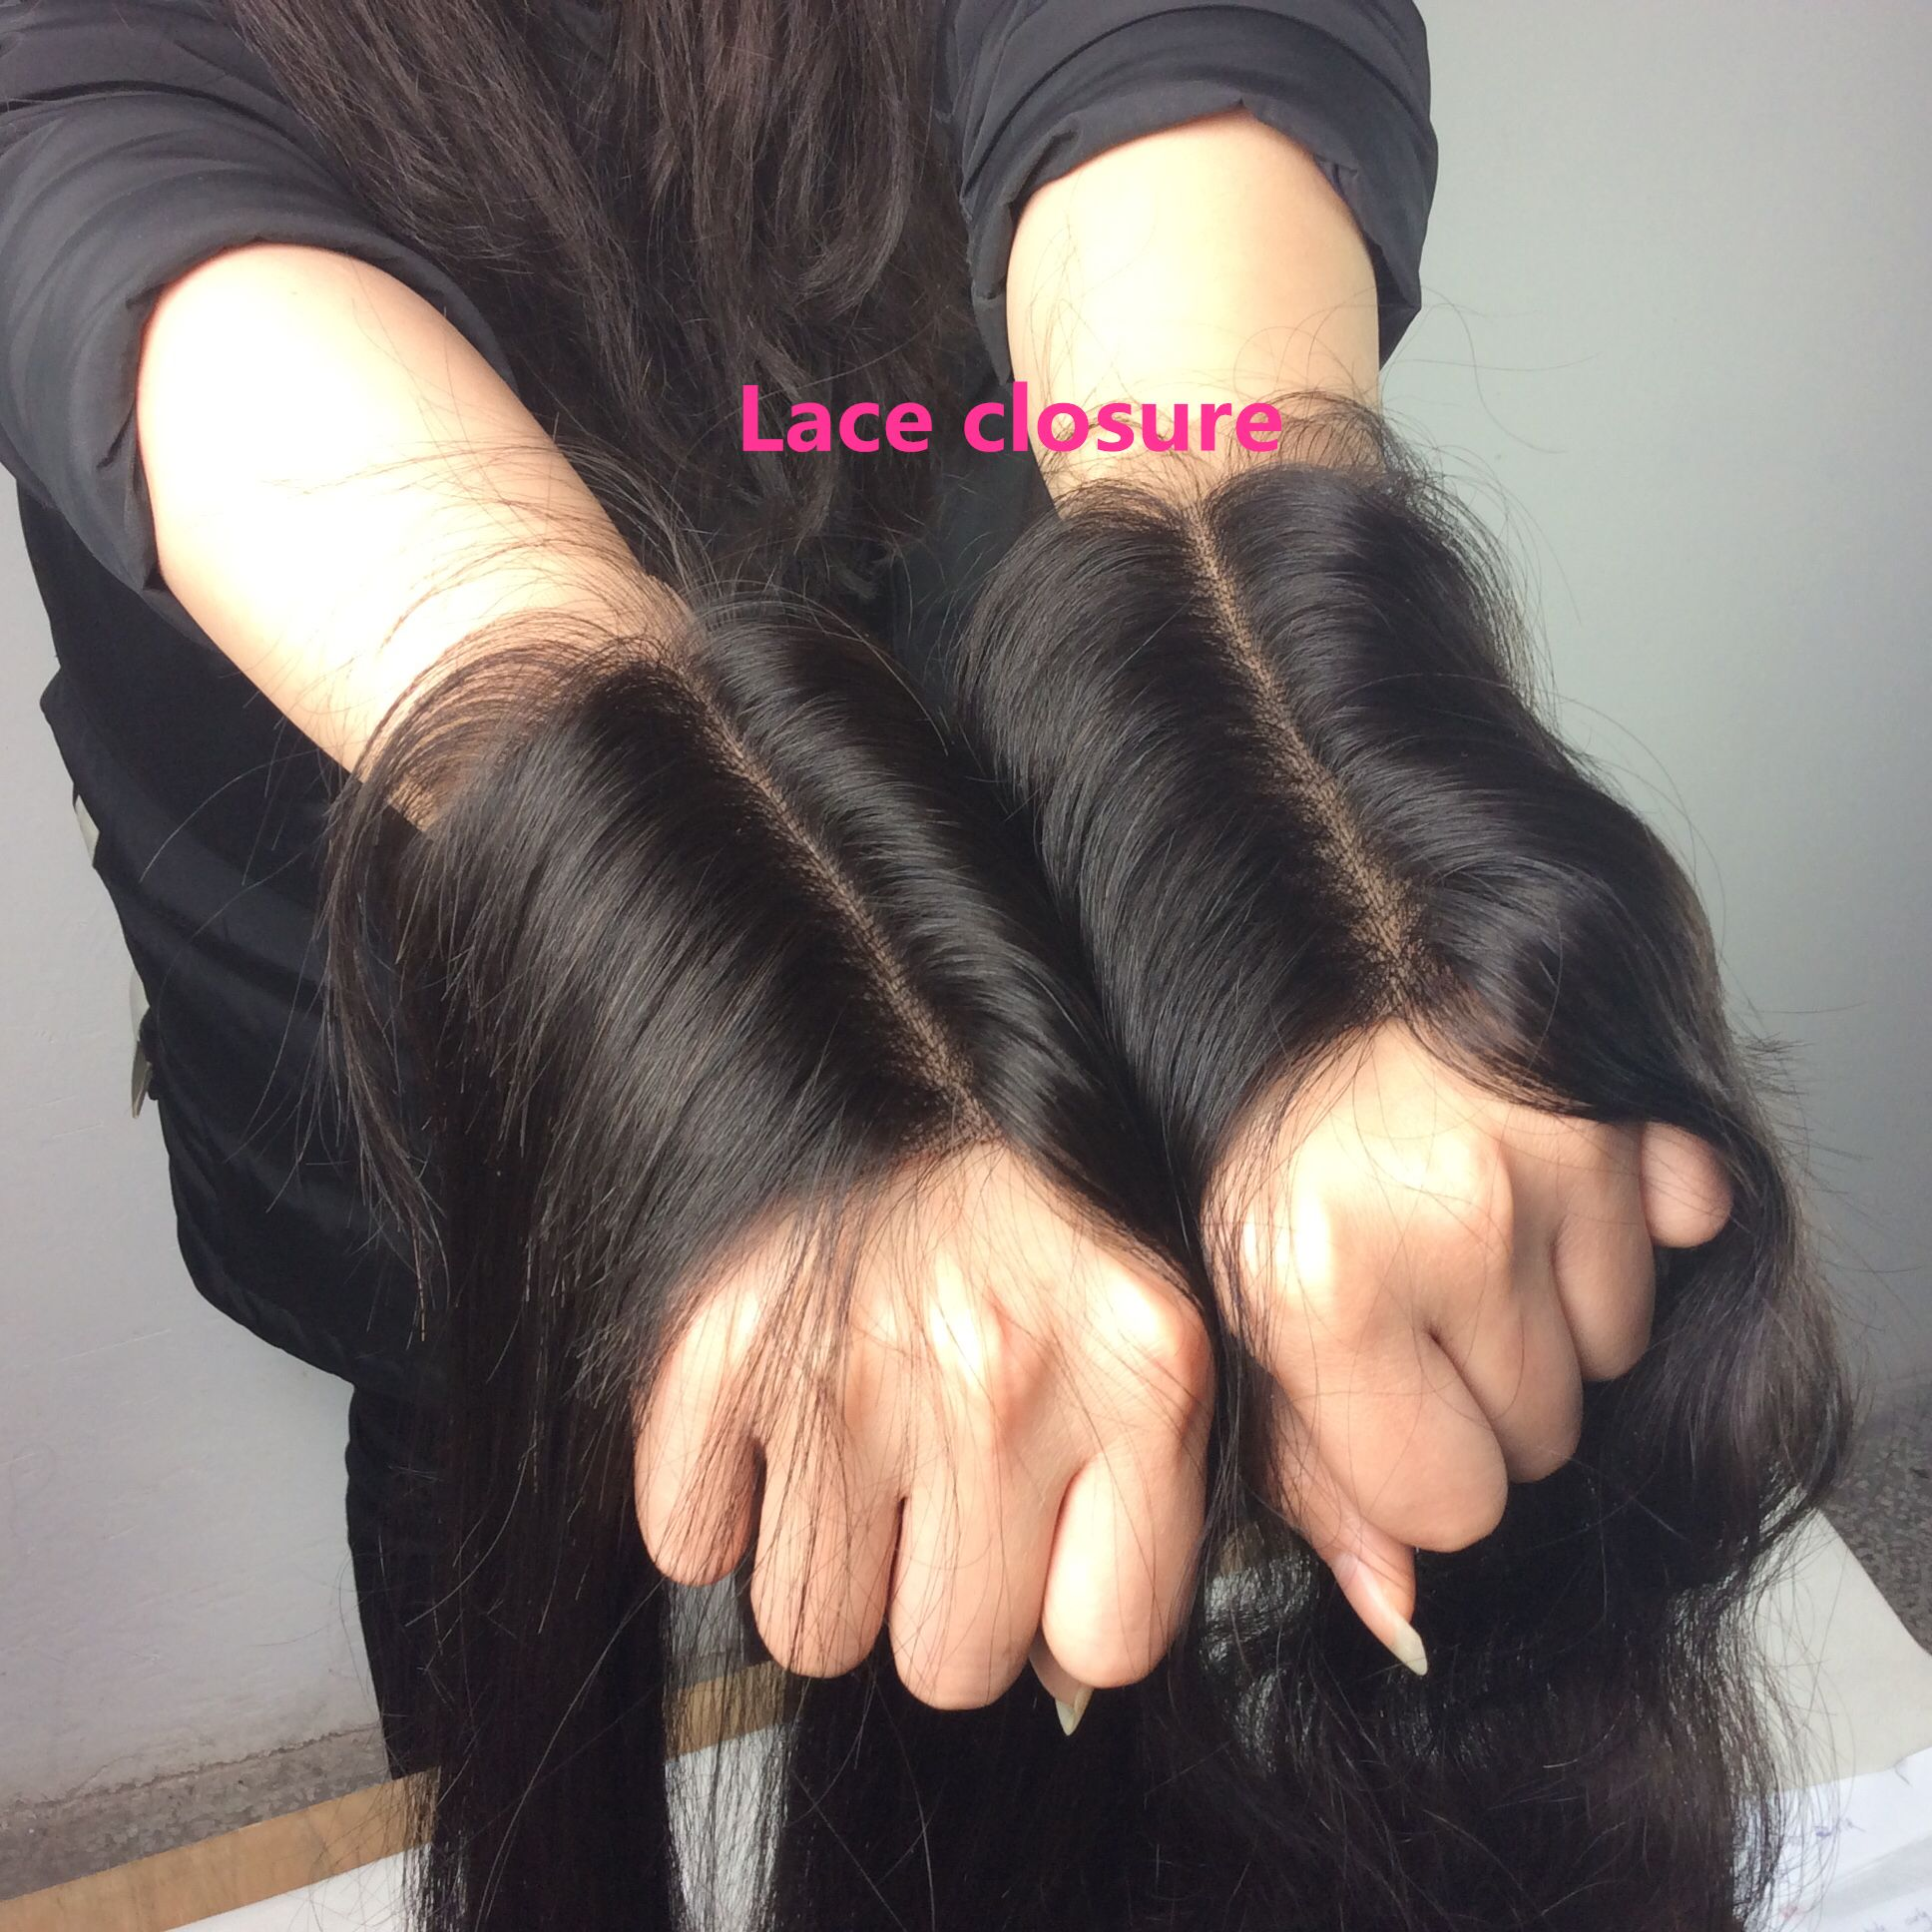 #dyhair777 lace closure looks so natural ,no shedding no tangle , link: www.dyhair777.com